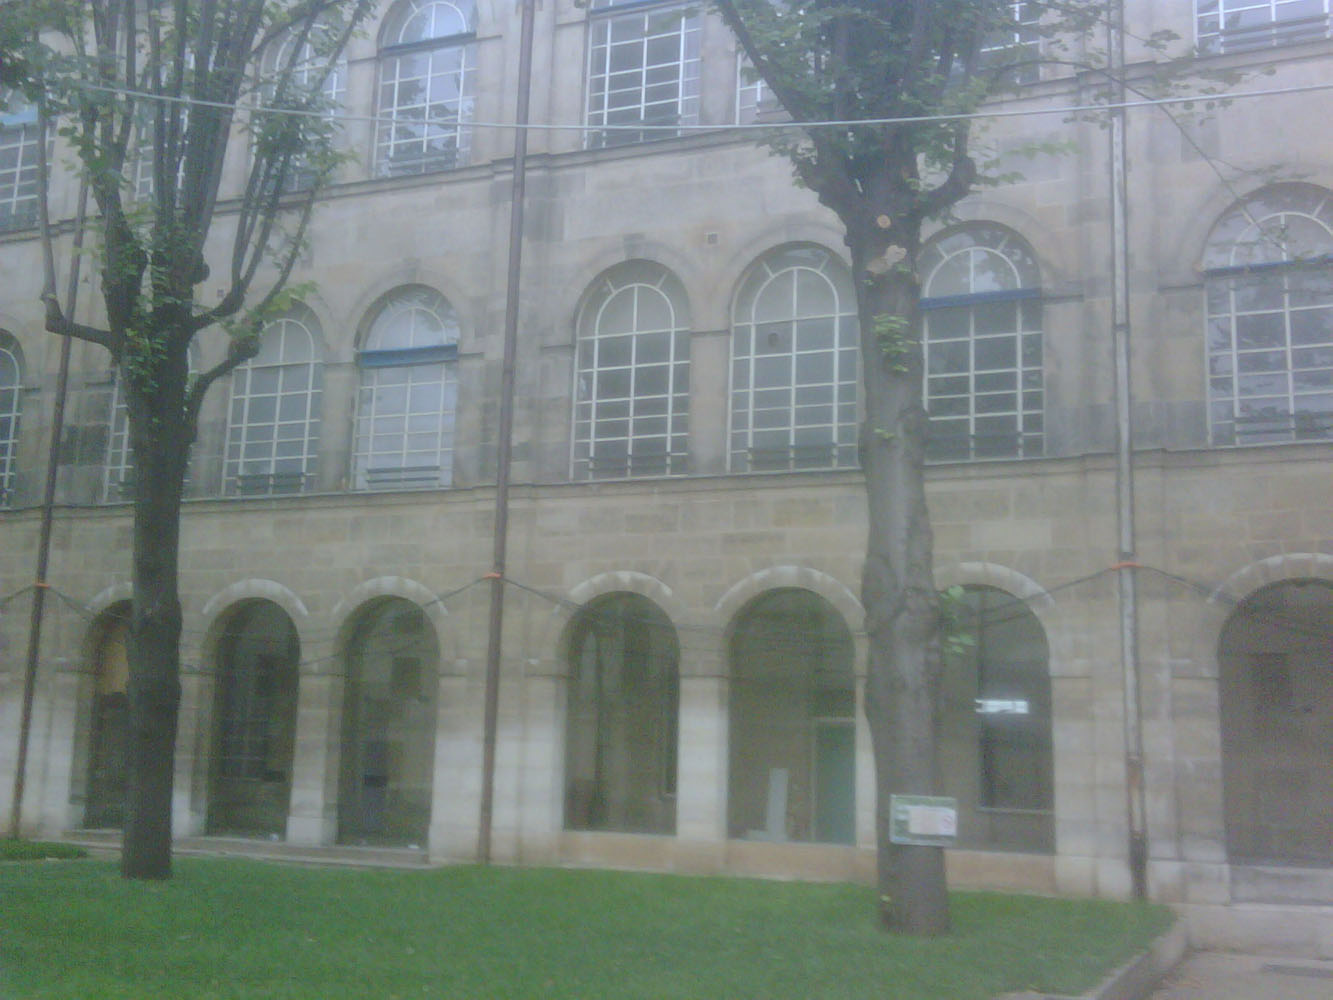 Prison Saint-Lazare, infirmary wing, courtyard